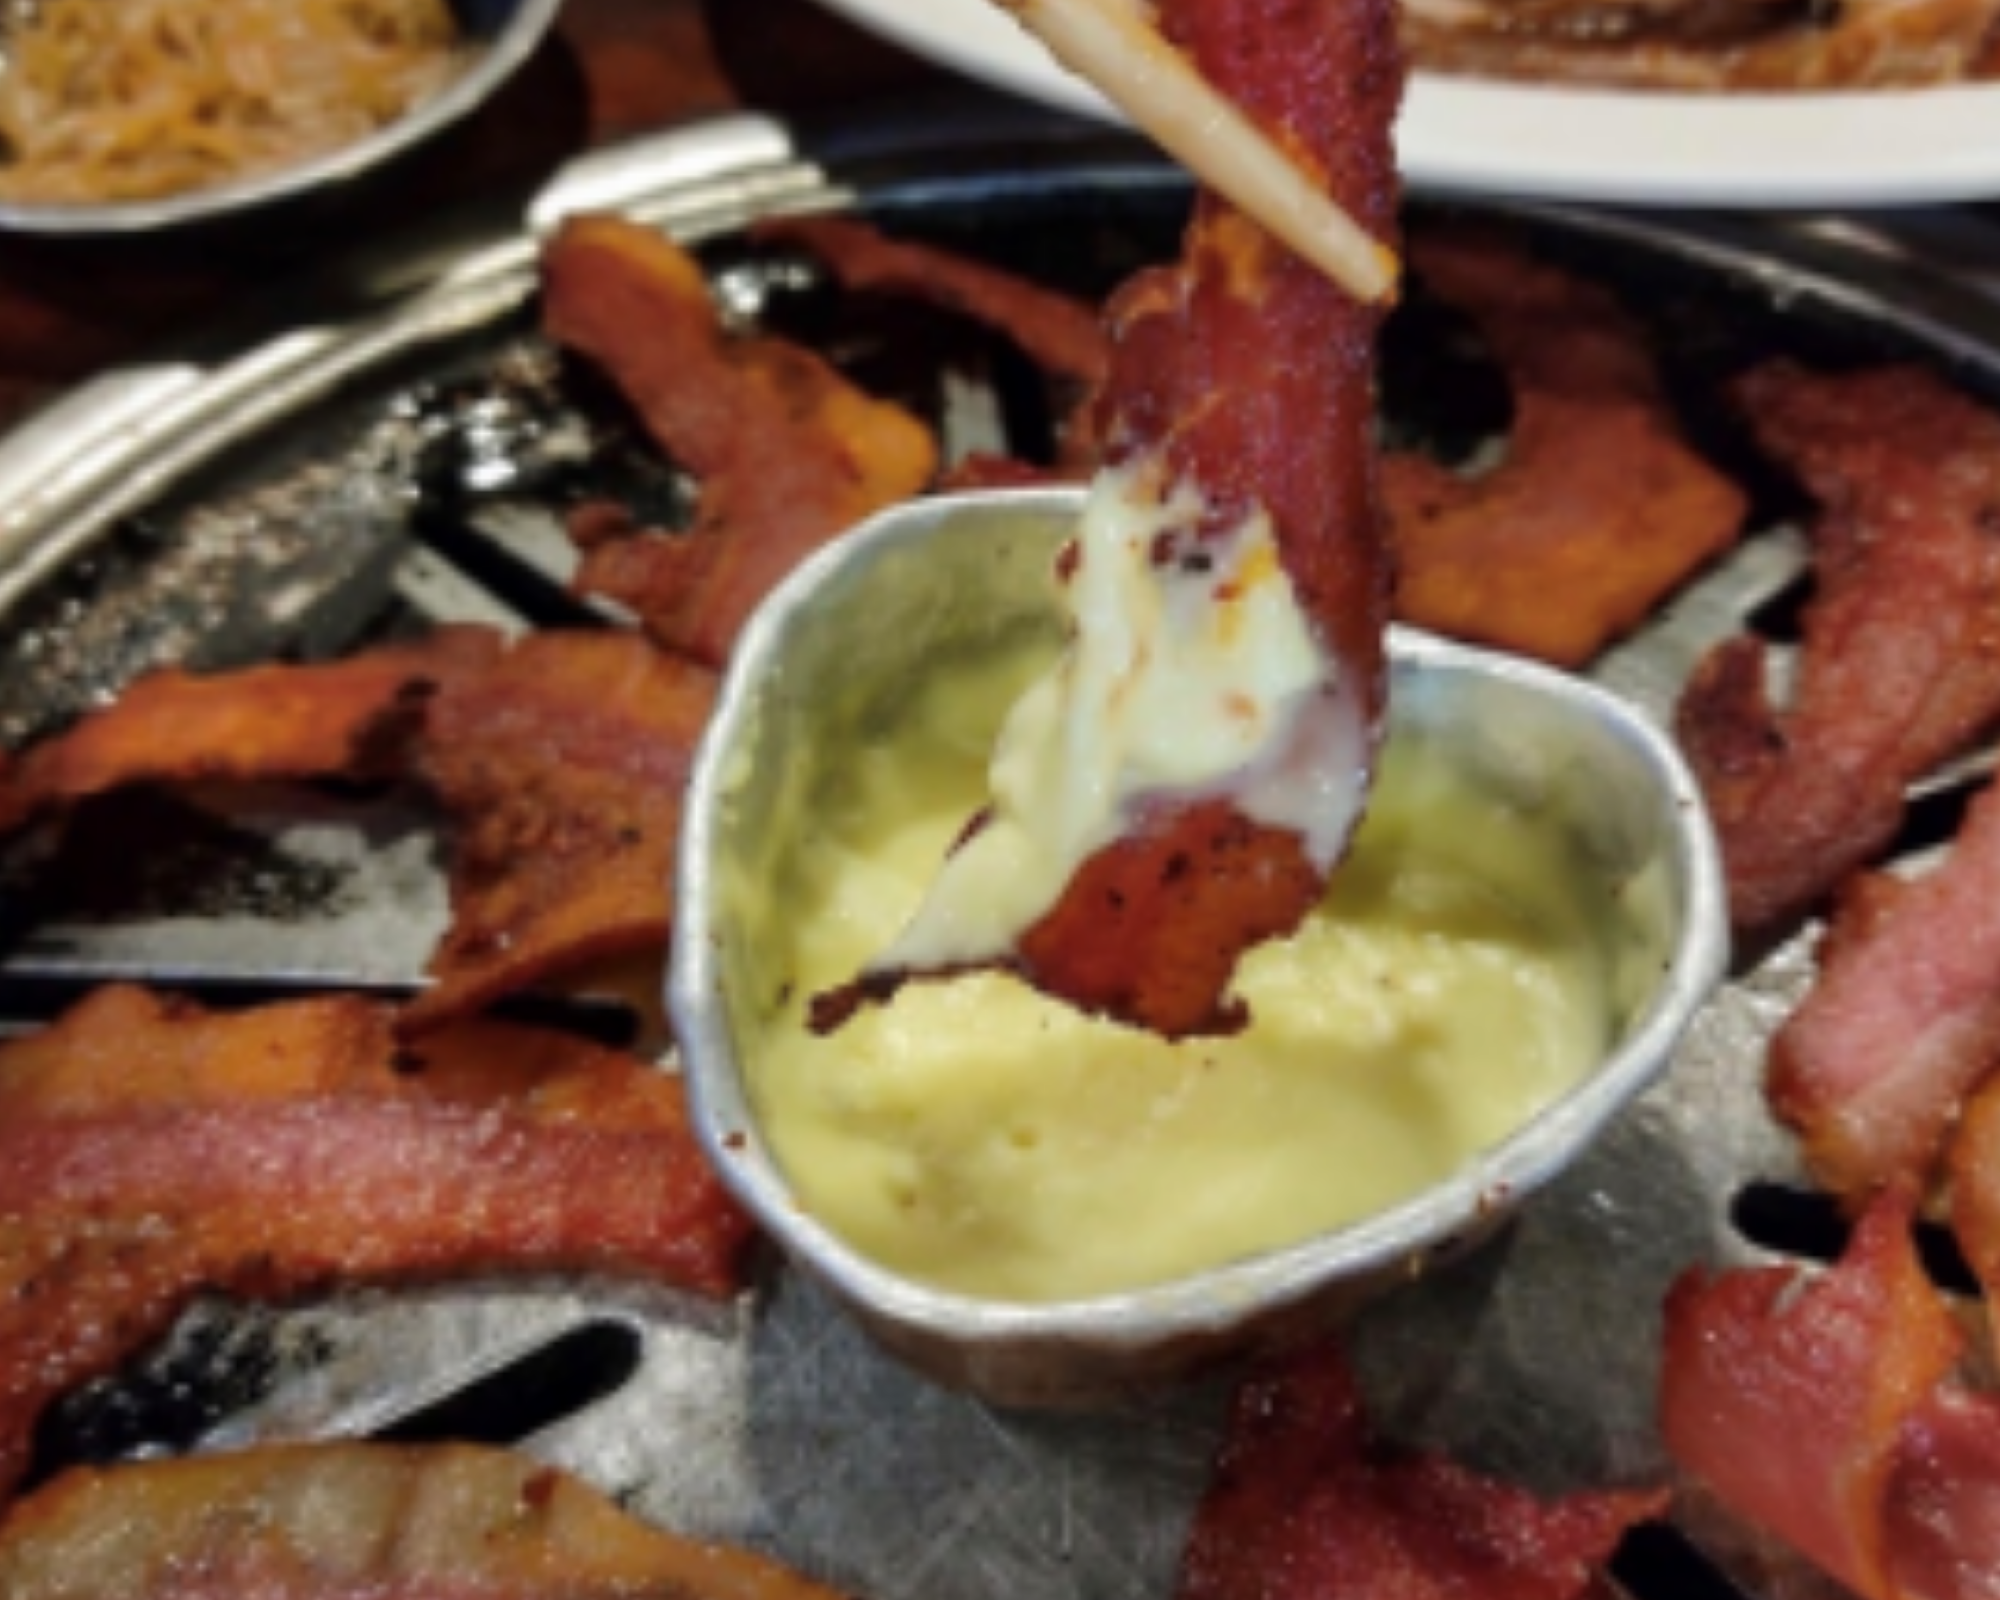 A strip of bacon dipped in cheese sauce surrounded by more strips of bacon.